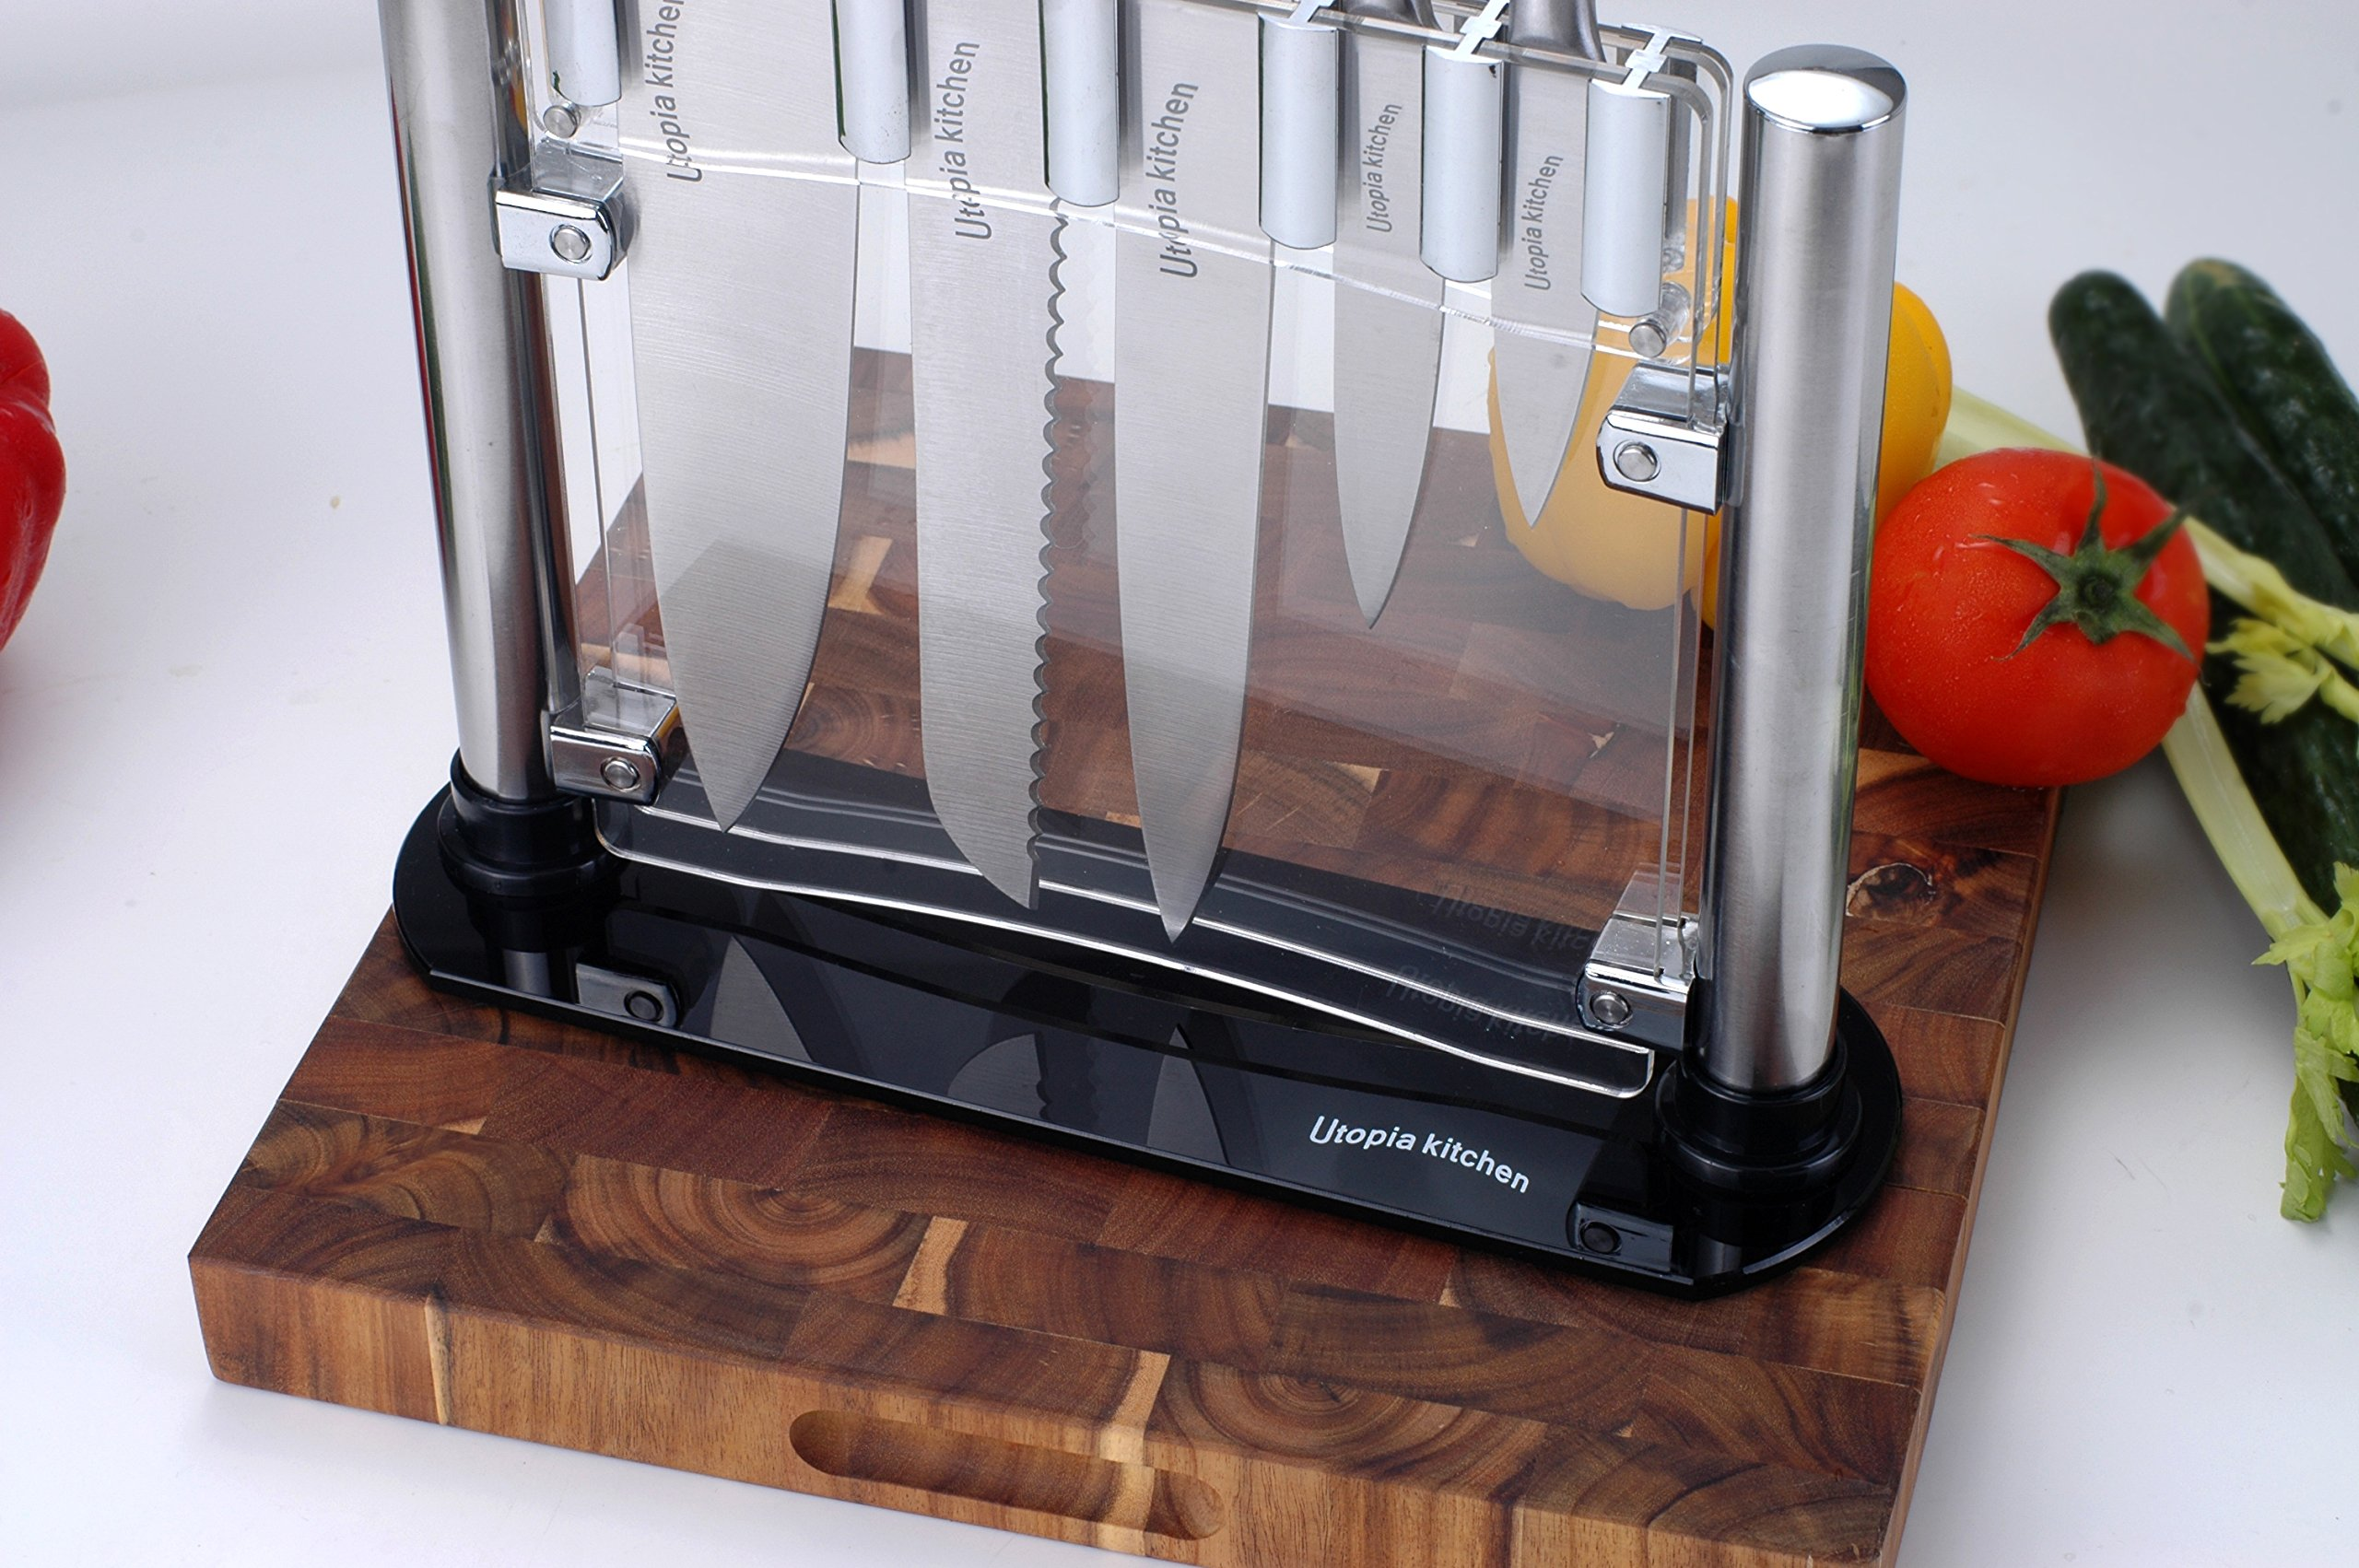 Utopia Kitchen Knife Set - 6 Pieces Stainless Steel Knives with an Acrylic Stand by Utopia Kitchen (Image #3)